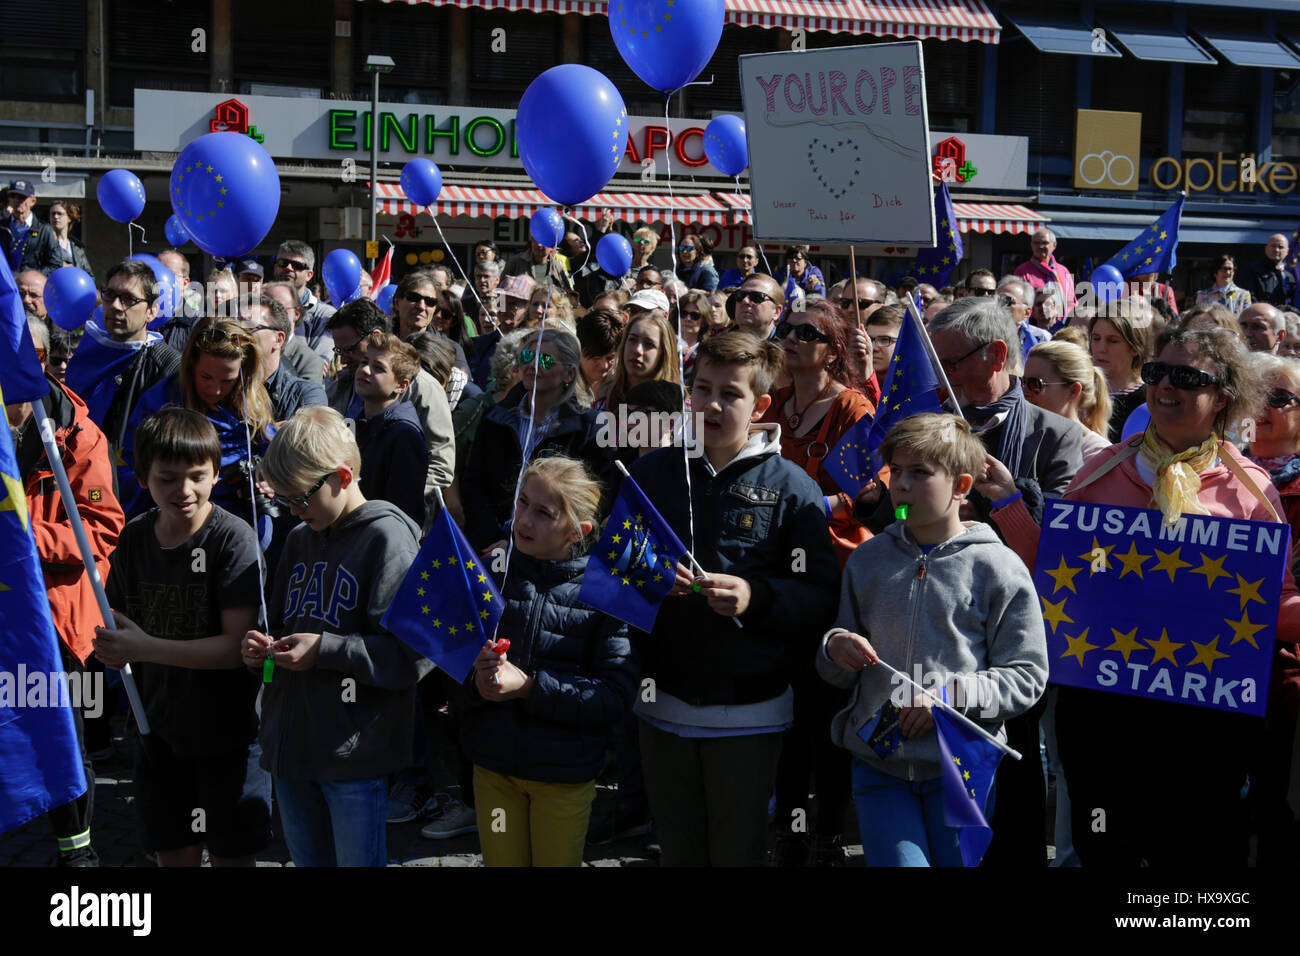 Frankfurt, Germany. 26th Mar, 2017. People protest in the city centre with European Union flags and balloons in - Stock Image